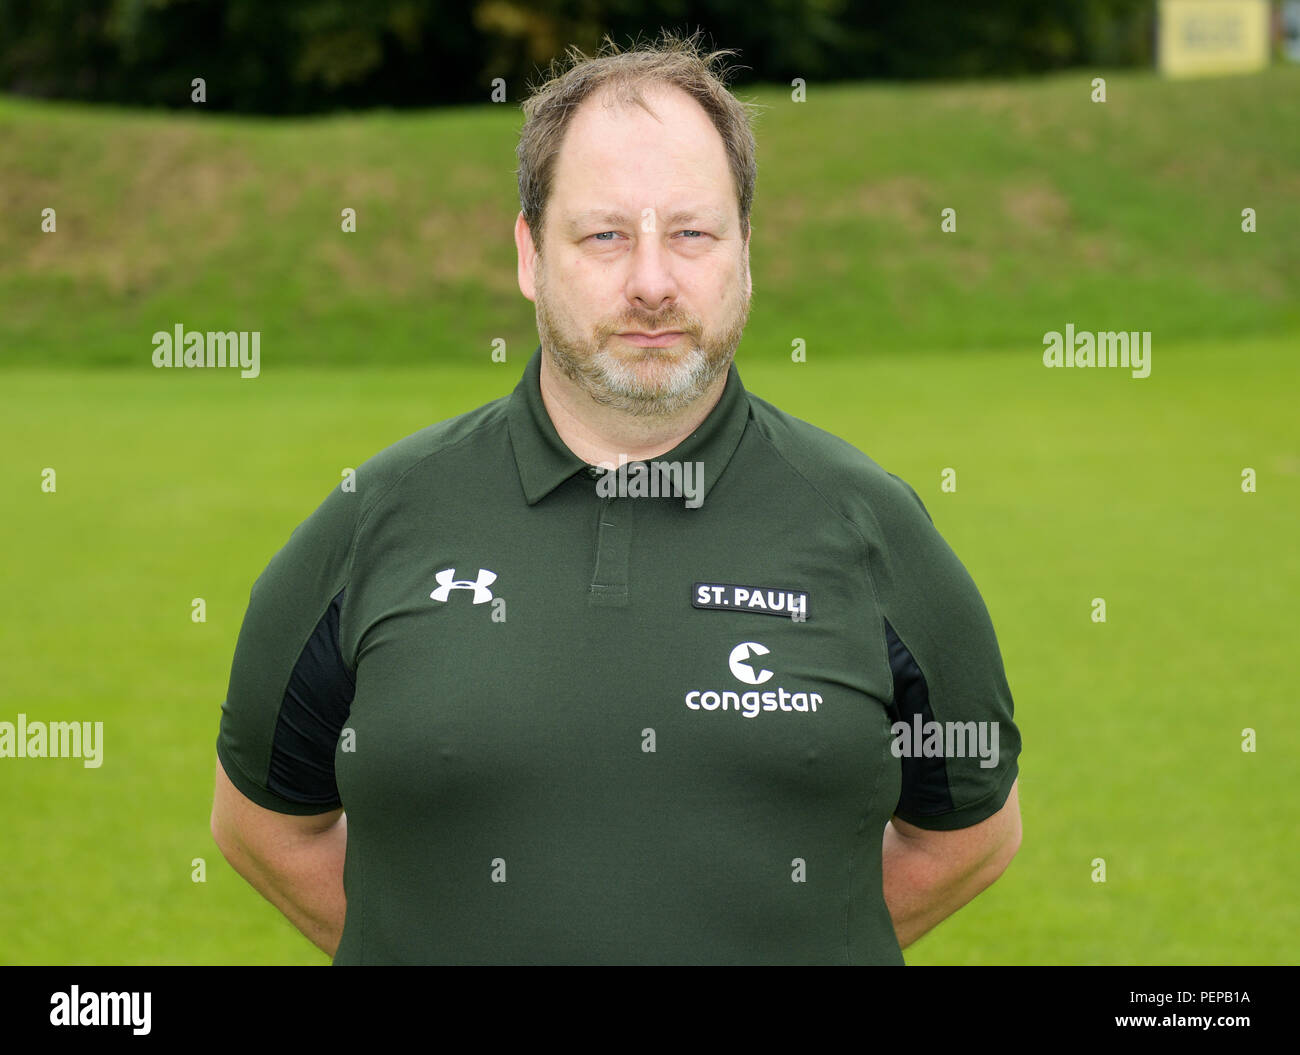 Hamburg, Germany. 05th July, 2018. 2nd German Bundesliga, official photocall FC St. Pauli for season 2018/19 in Hamburg, Germany: kitman Andreas Kreft ; Credit: Axel Heimken/dpa | usage worldwide/dpa/Alamy Live News - Stock Image